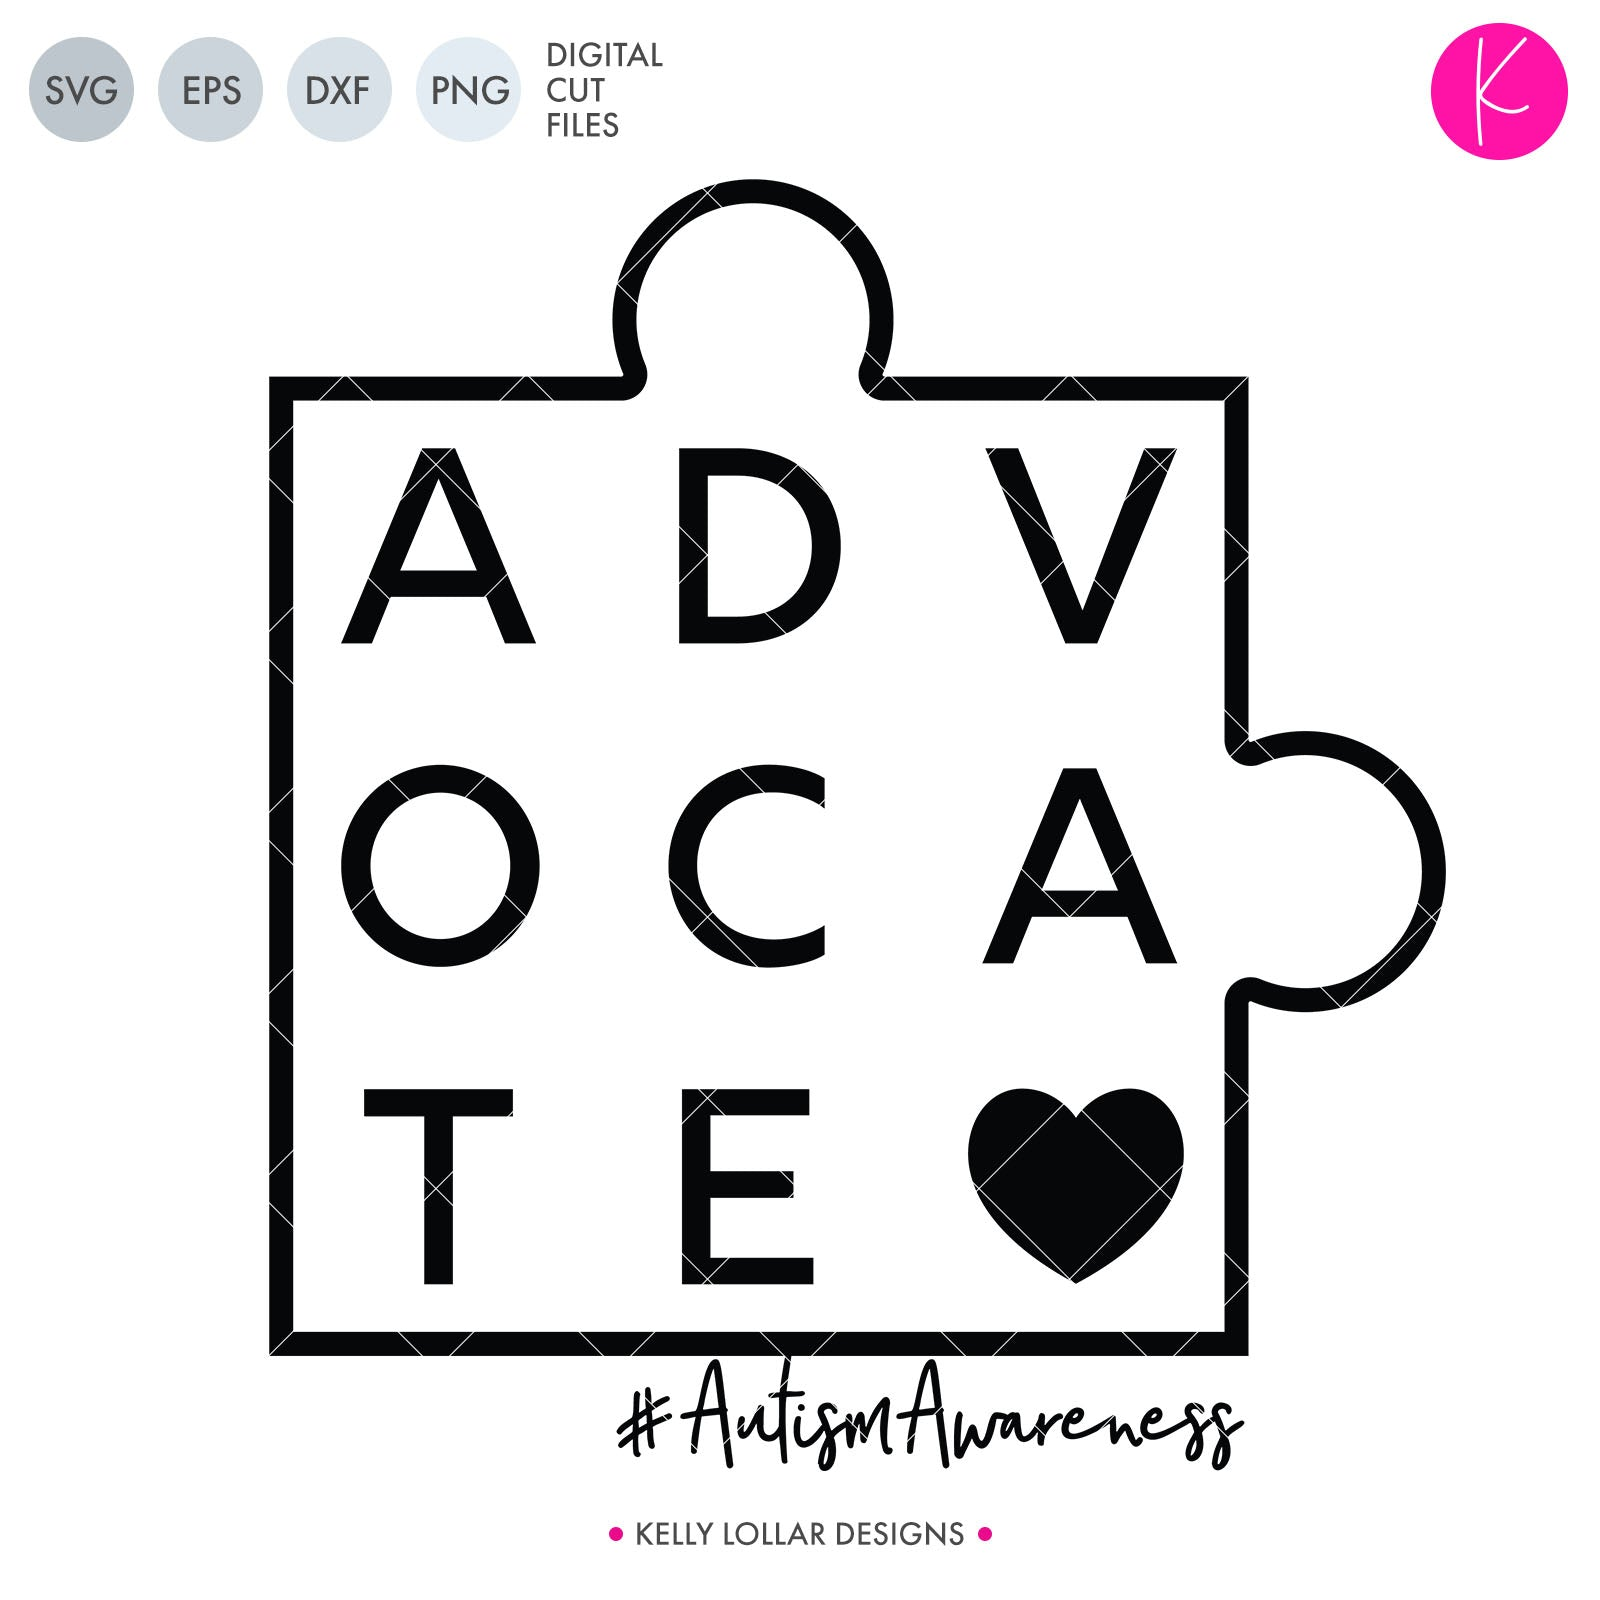 Advocate Puzzle Piece | SVG DXF EPS PNG Cut Files Autism Awareness Puzzle Piece Design with Heart | SVG DXF PNG Cut Files Includes 2 versions of the word Advocate spaced in a square puzzle piece. Clean and modern unisex